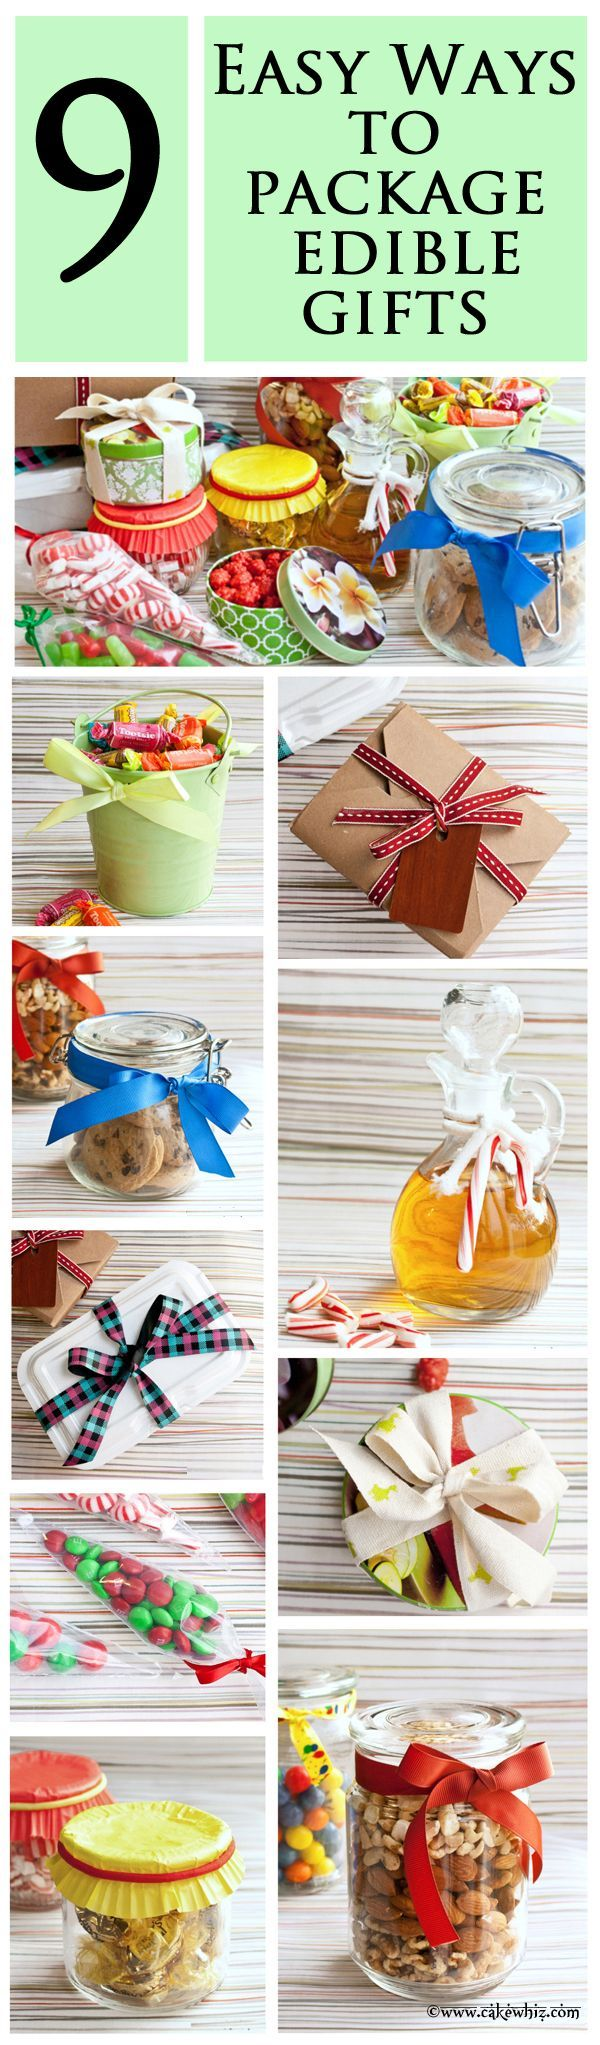 Gift wrapping ideas for home made baked goods - 9 Super Easy Ways To Package Homemade Edible Gifts Plus Many Plus Lots Of Tips Just In Time For The Holidays